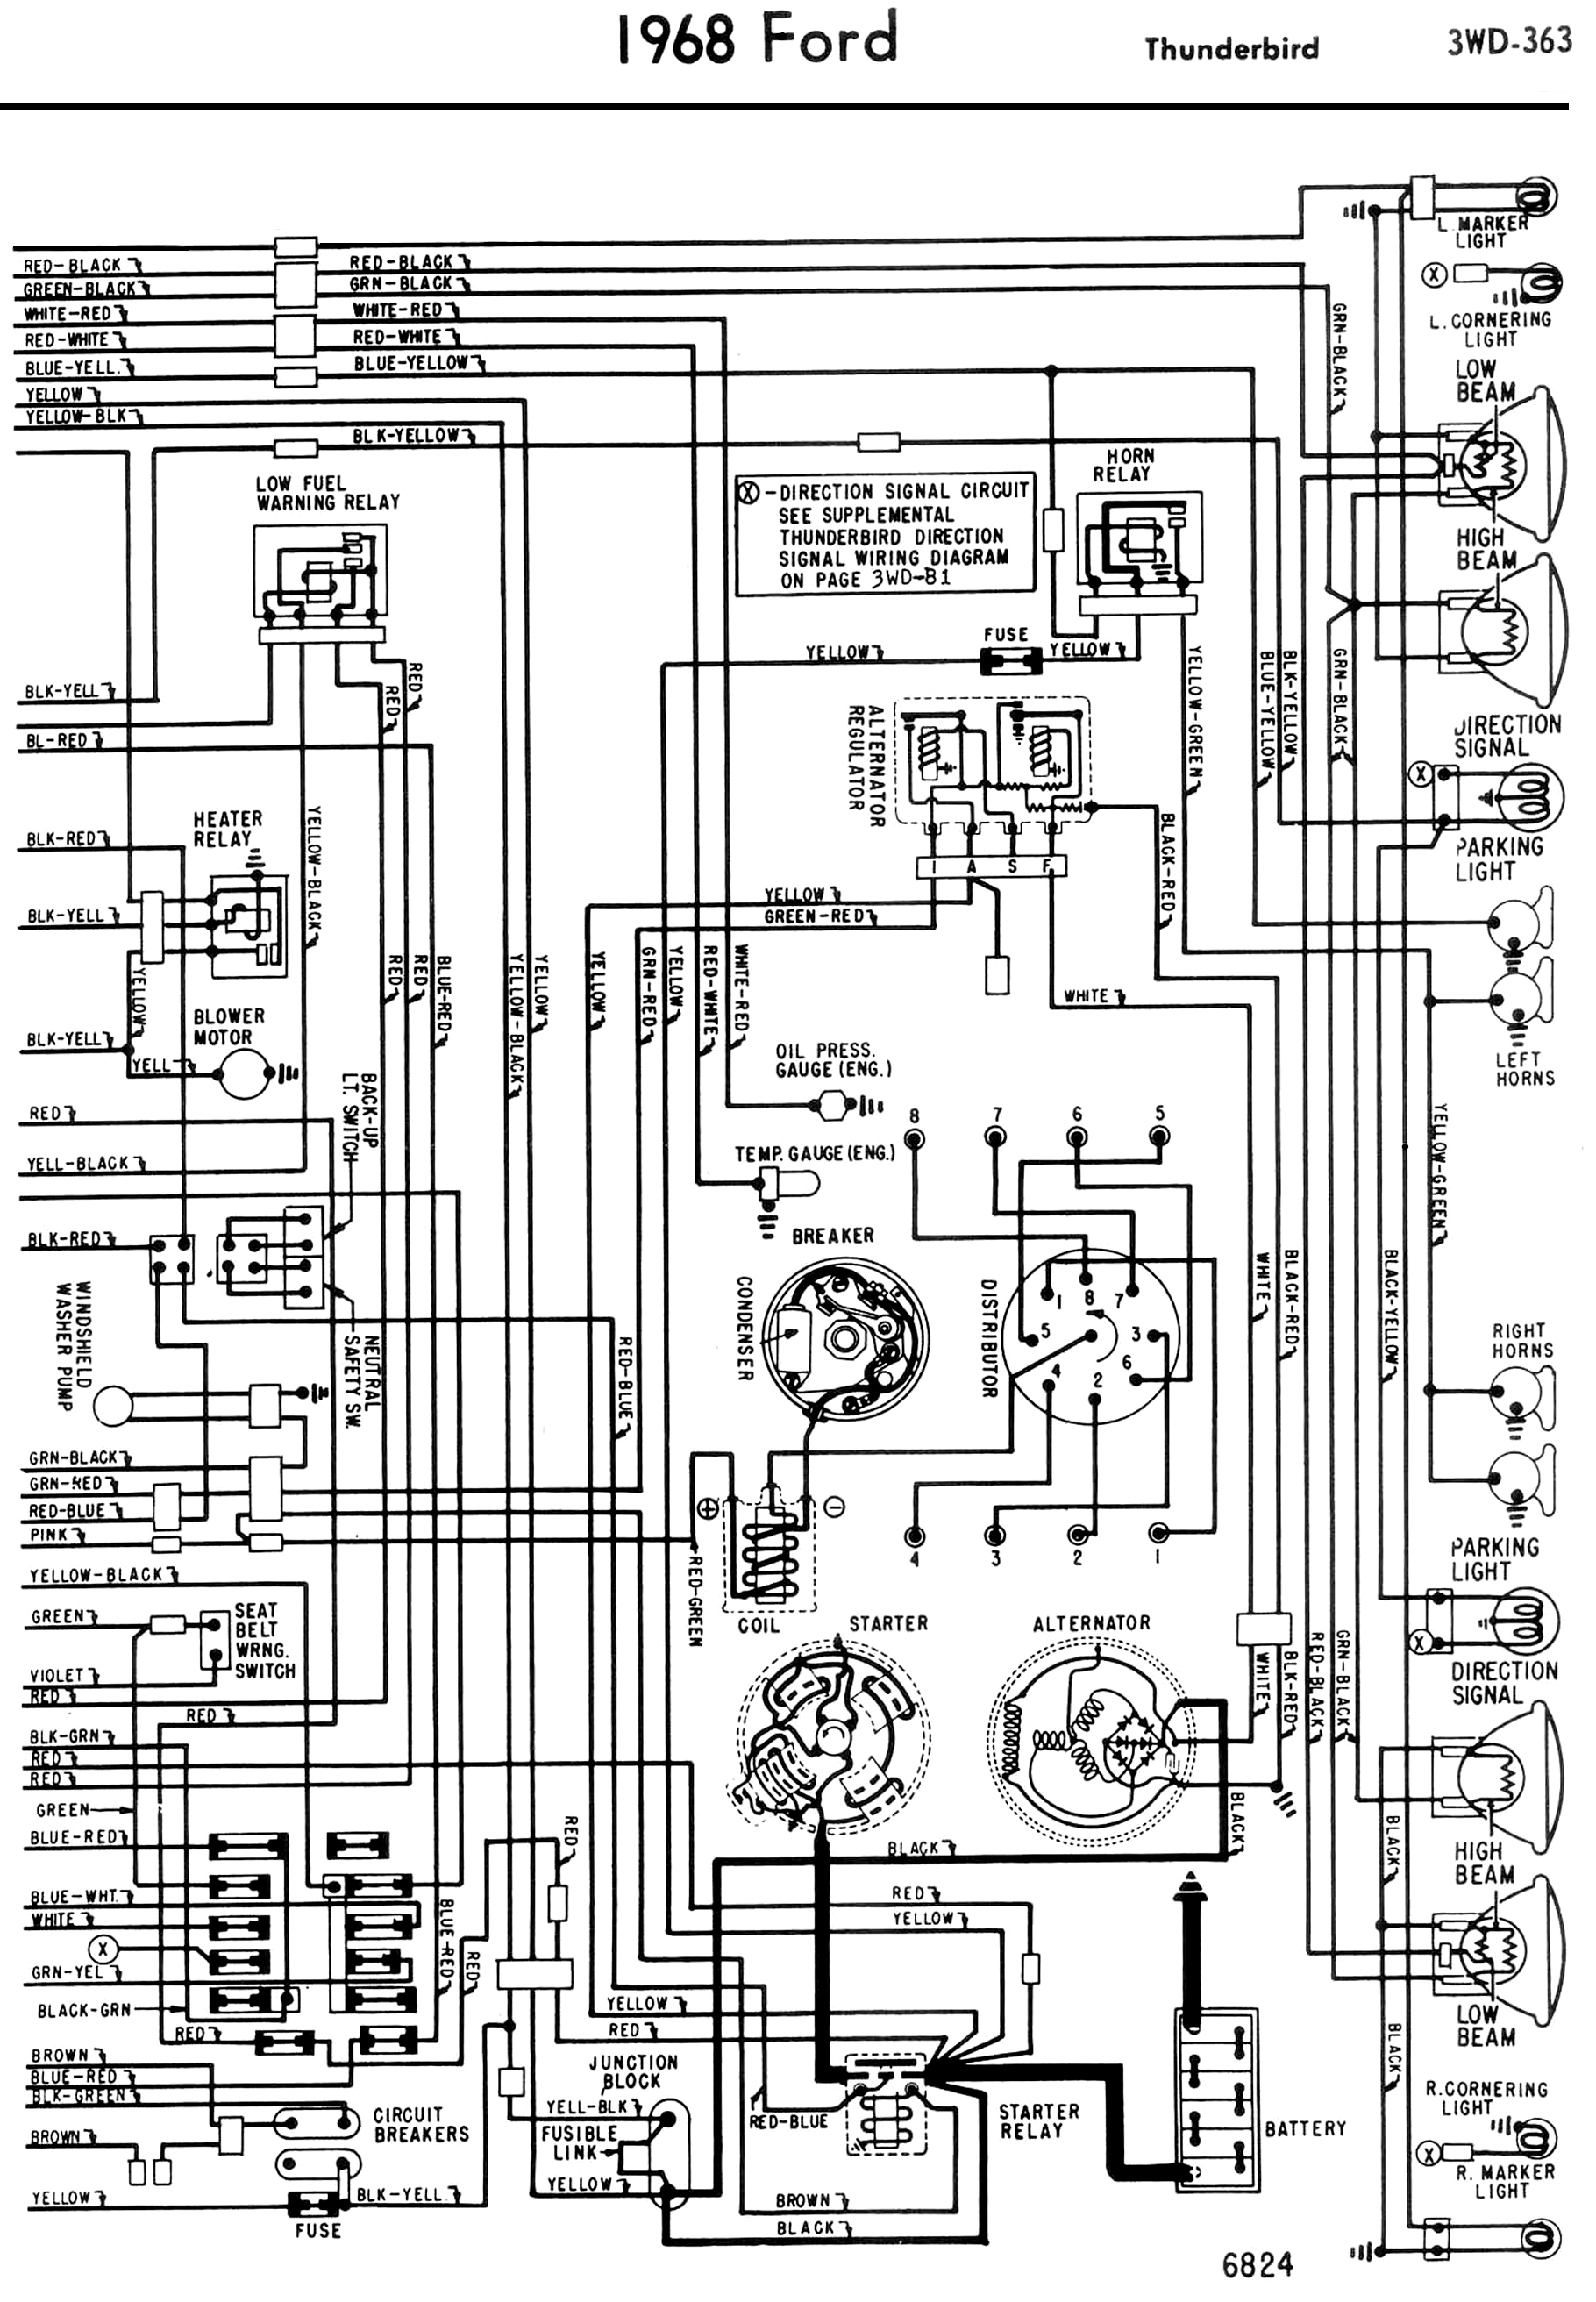 1958 68 Ford Electrical Schematics Wiring 34